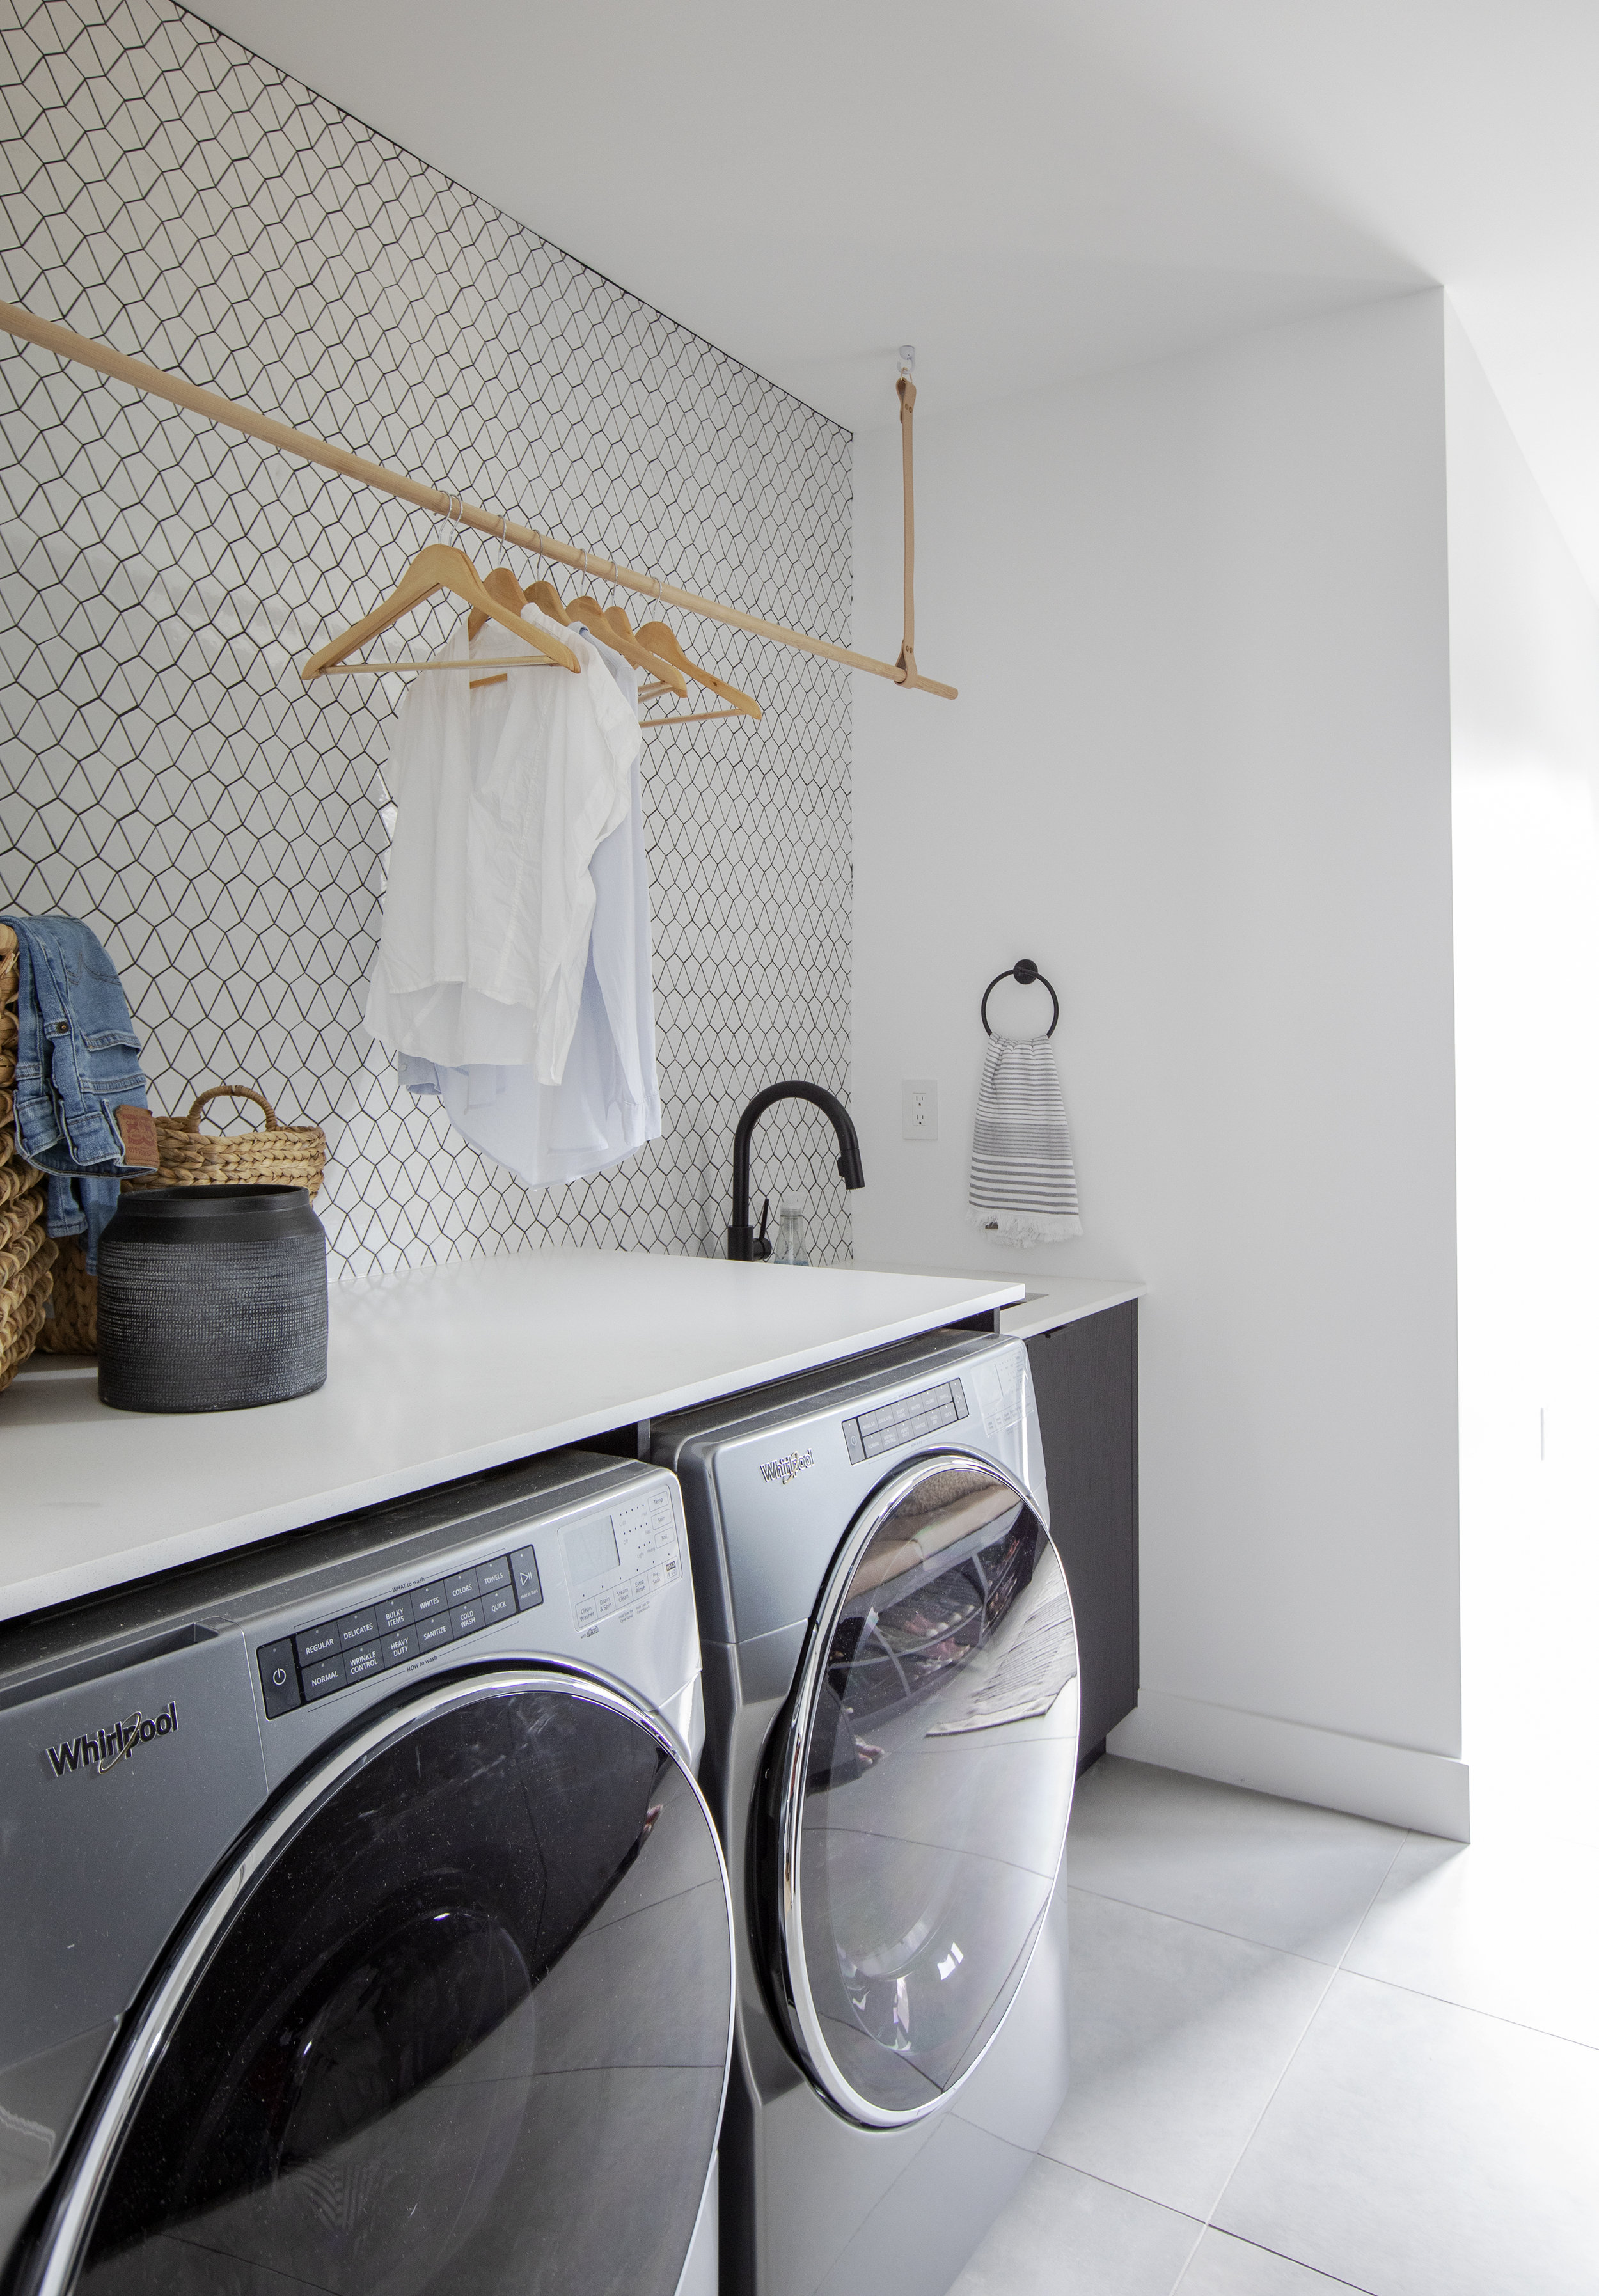 The laundry room of East 13th Street has a black and white geometric patterned wall, complete with an overhanging bar to hang shirts to dry.